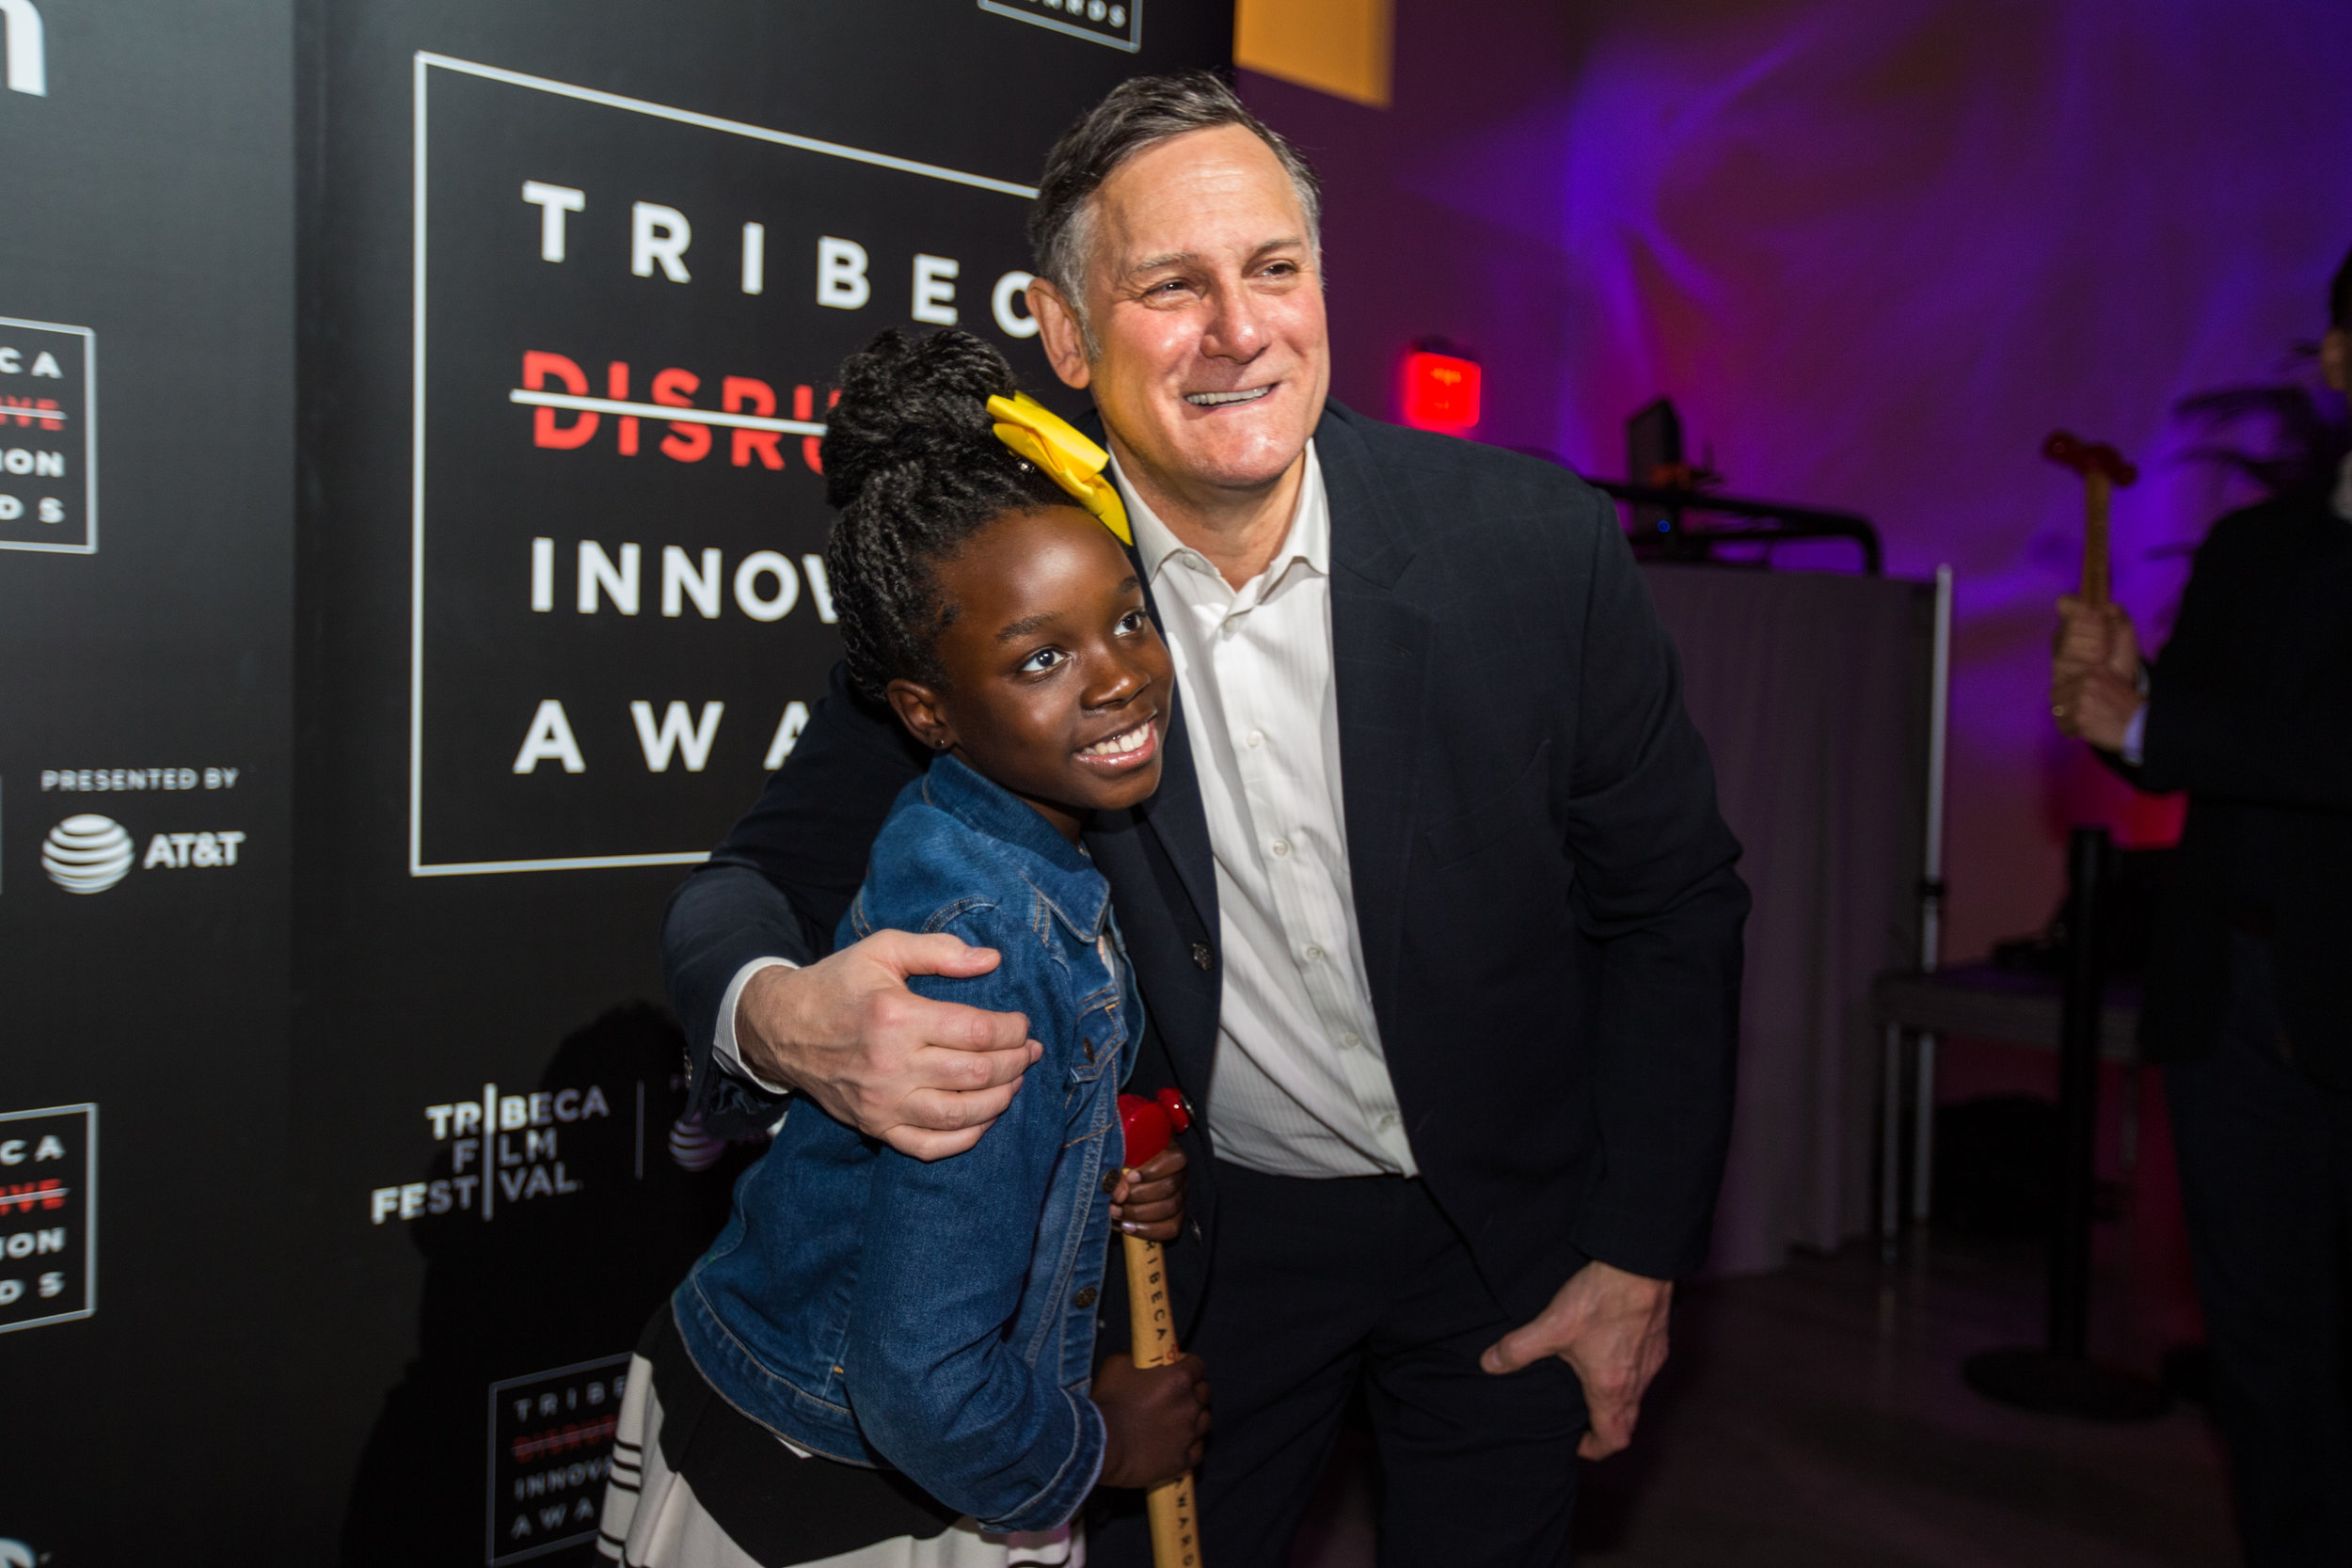 20170425-Tribeca Disruptive Innovation Awards-0117.jpg